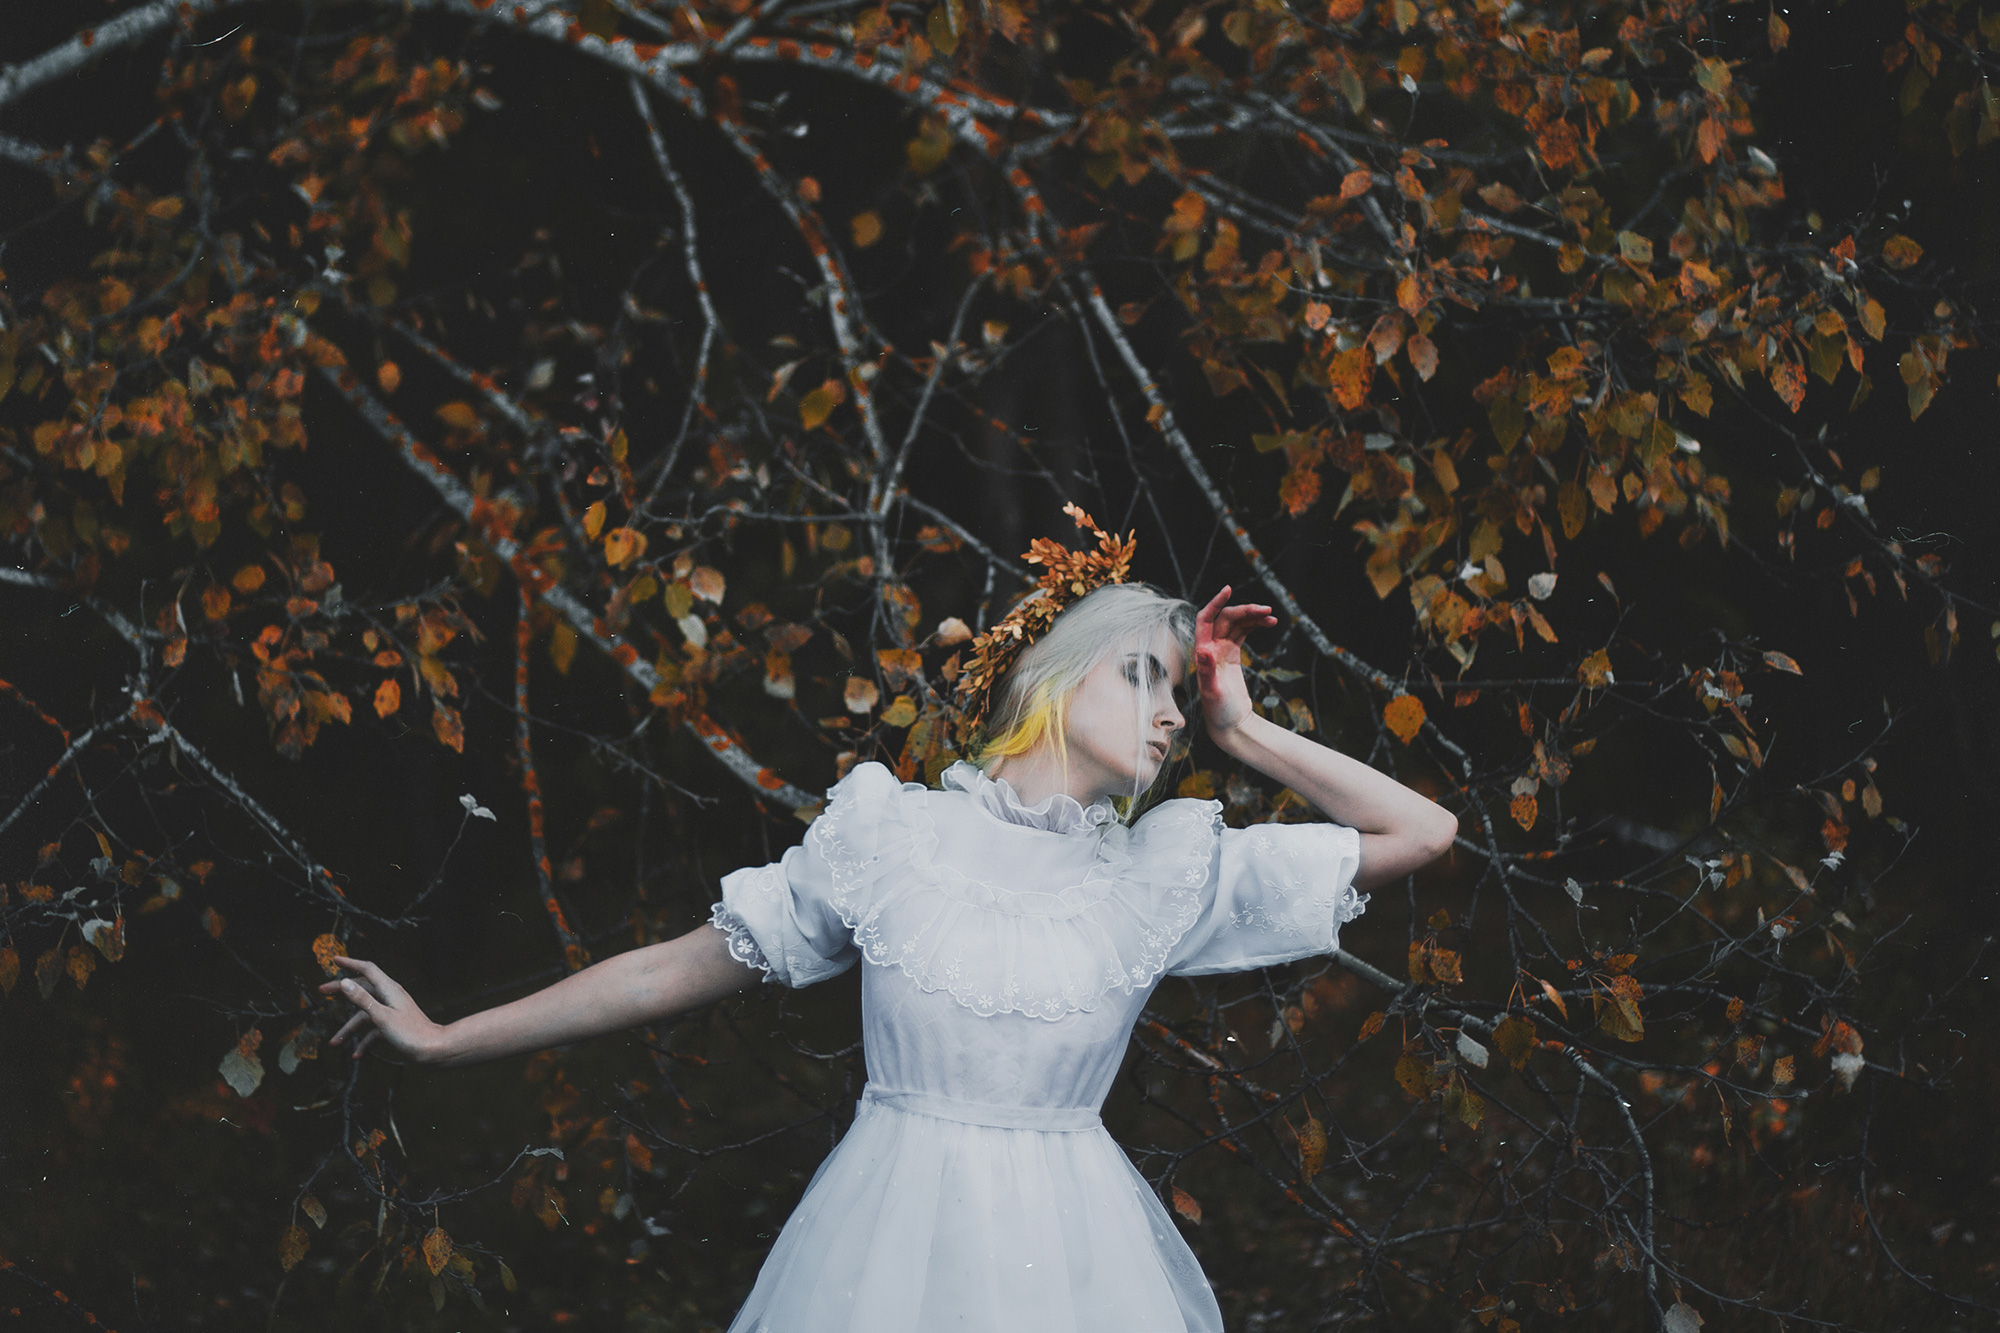 Aesthetics of Melancholy: Poetic Photography by Natalia Drepina